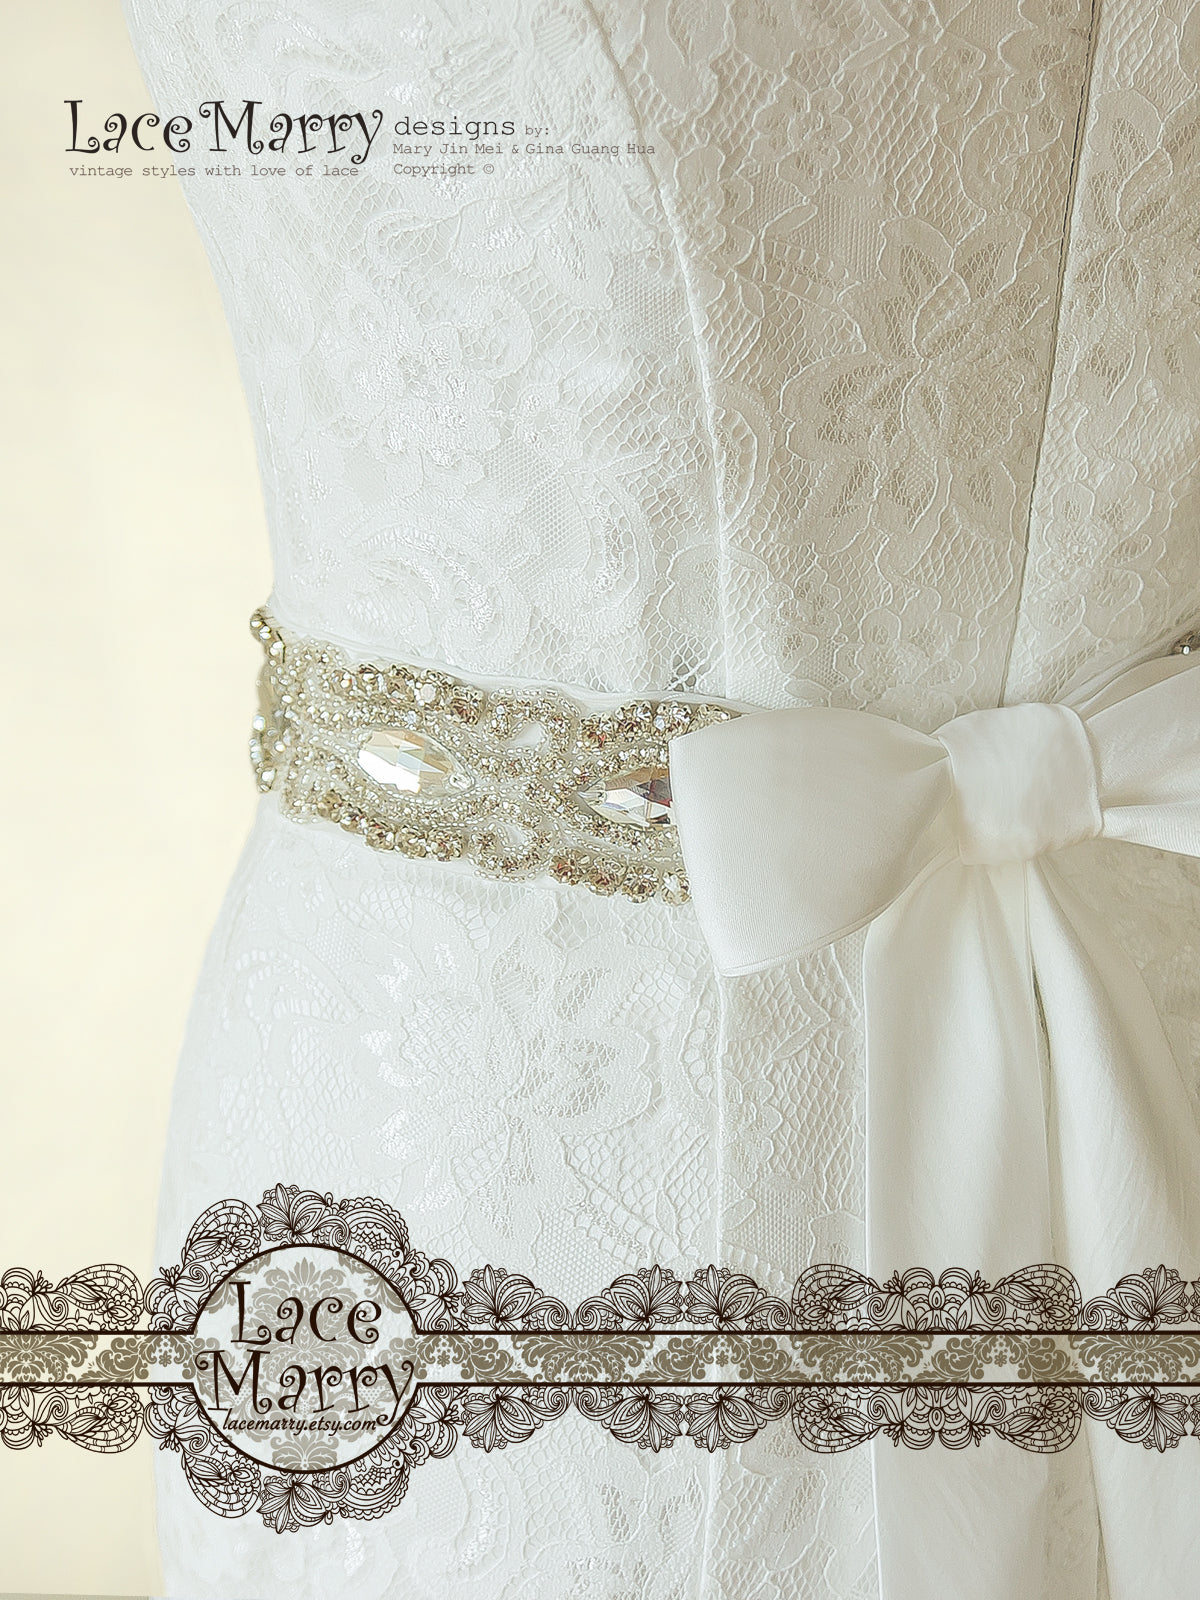 Beaded Embellishment Sash on Wedding Dress